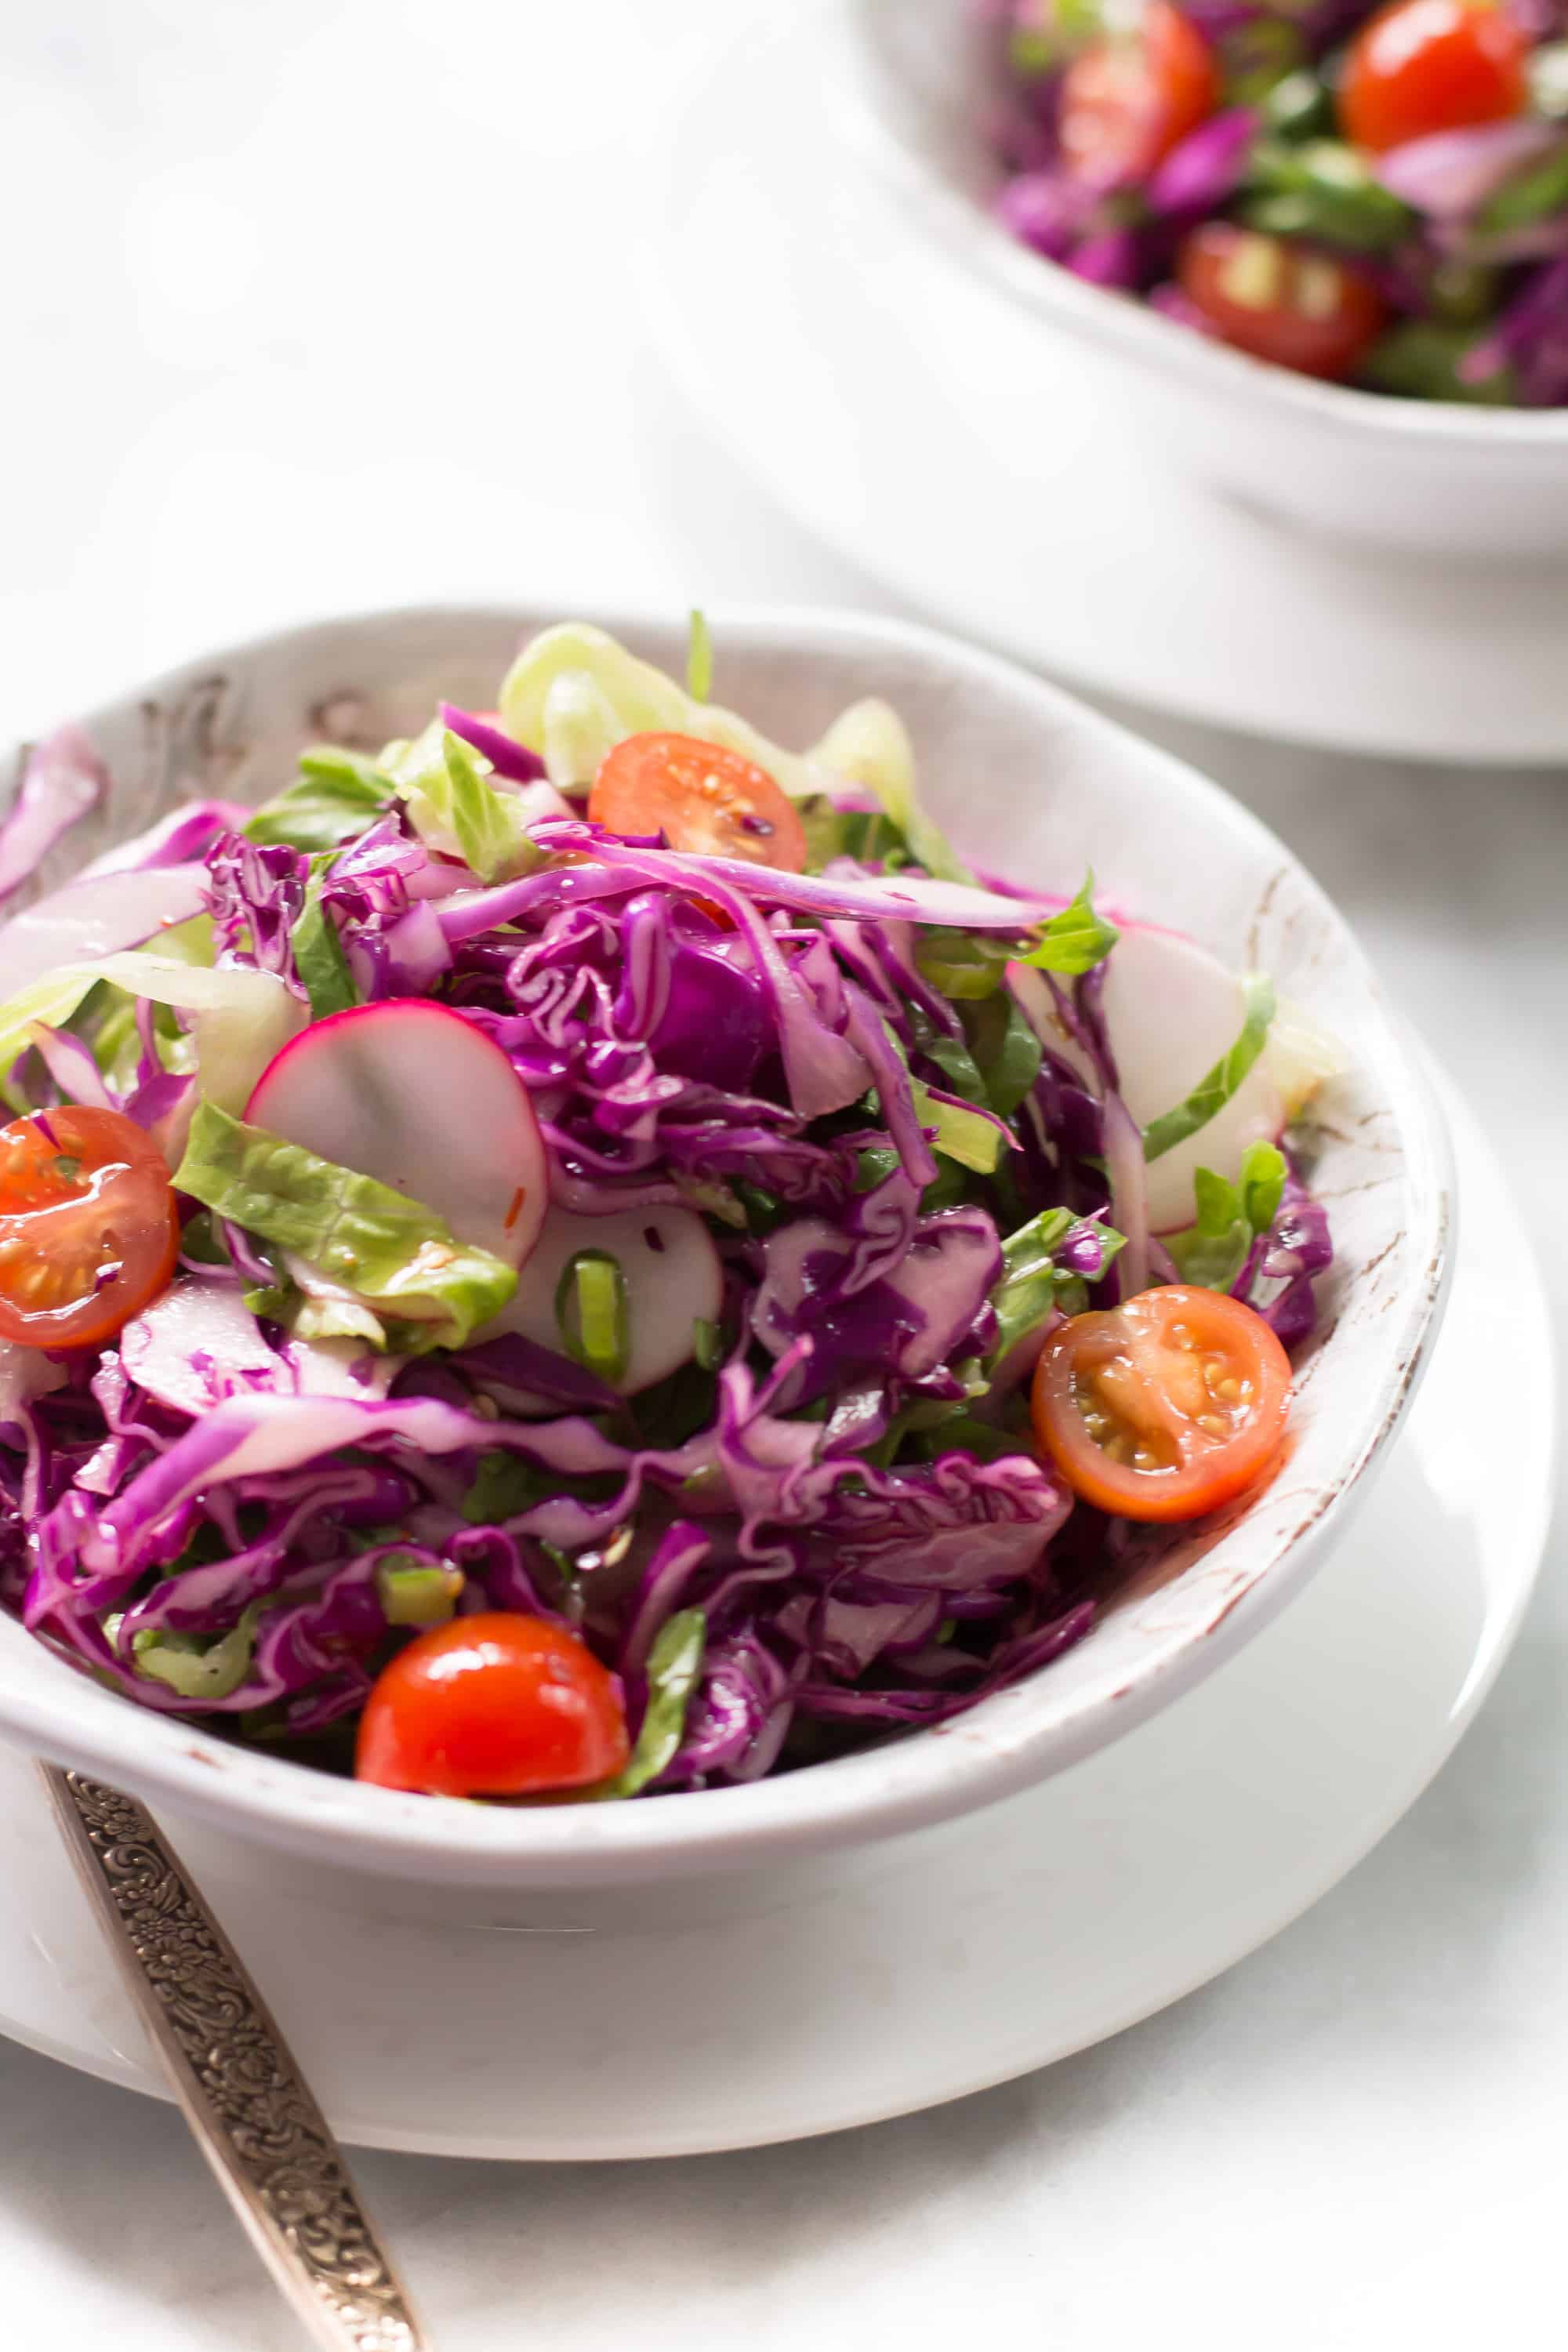 Easy Quick Red Cabbage Salad- Quick Easy Red Cabbage Salad comes together in minutes and is full of flavor. Make a batch for the whole week! We are addictive